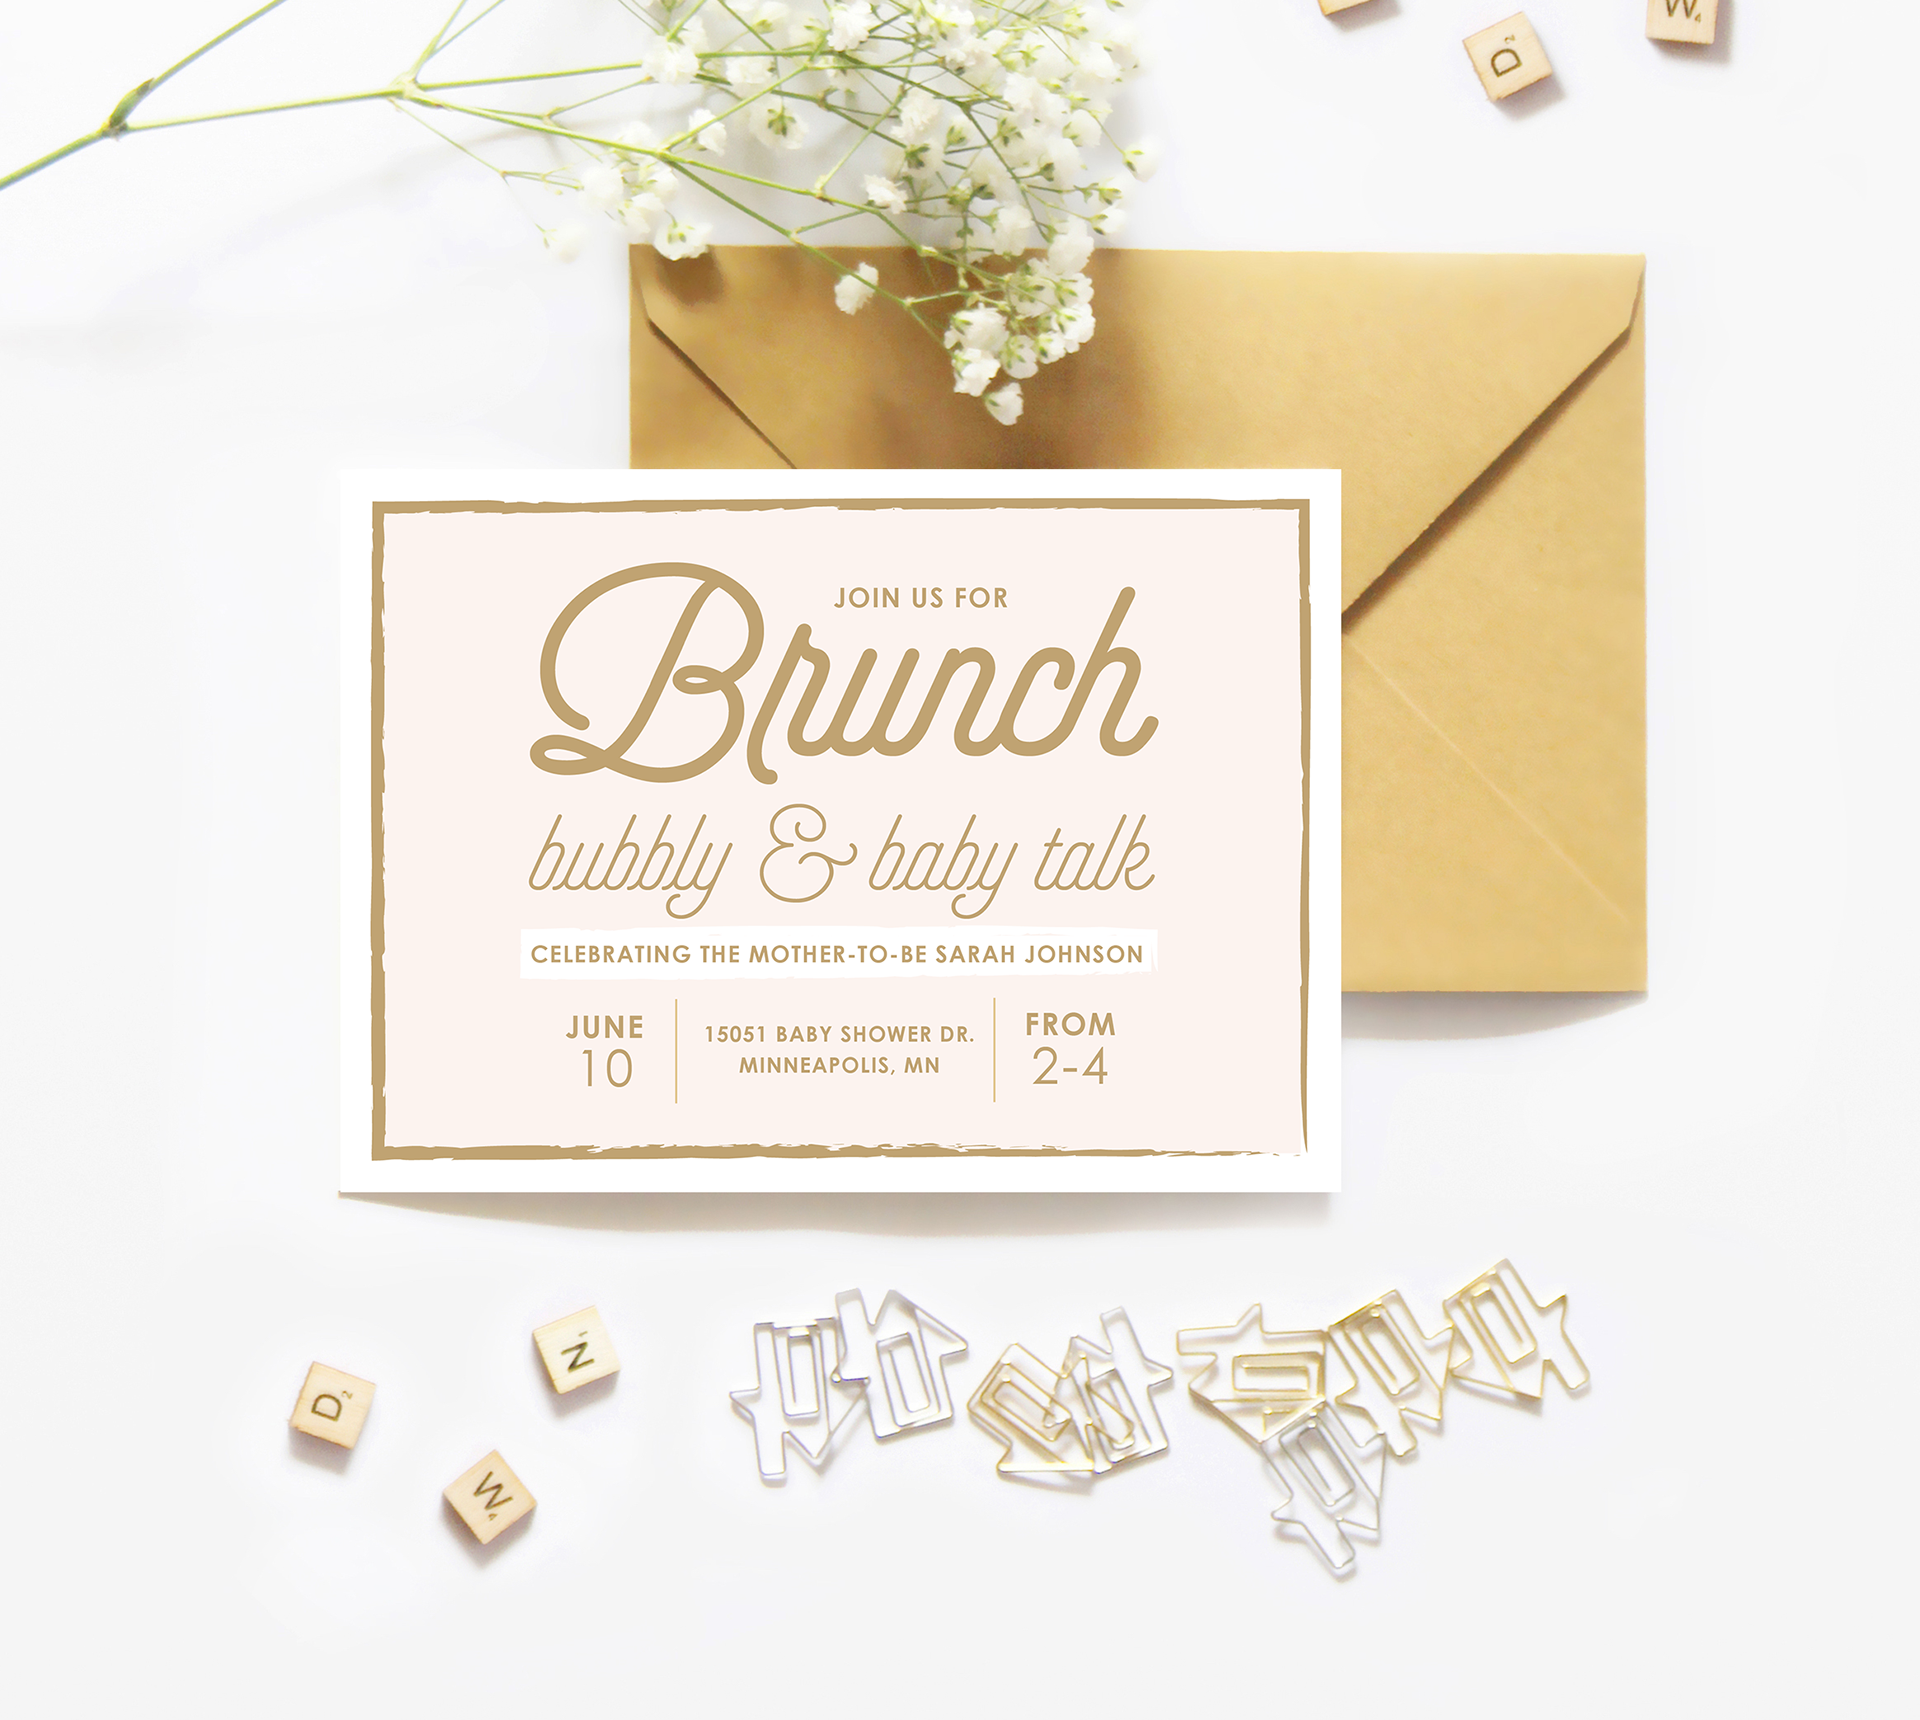 Chrissie Parker - Brunch, Bubbly, and Baby Talk Baby Shower Invitation